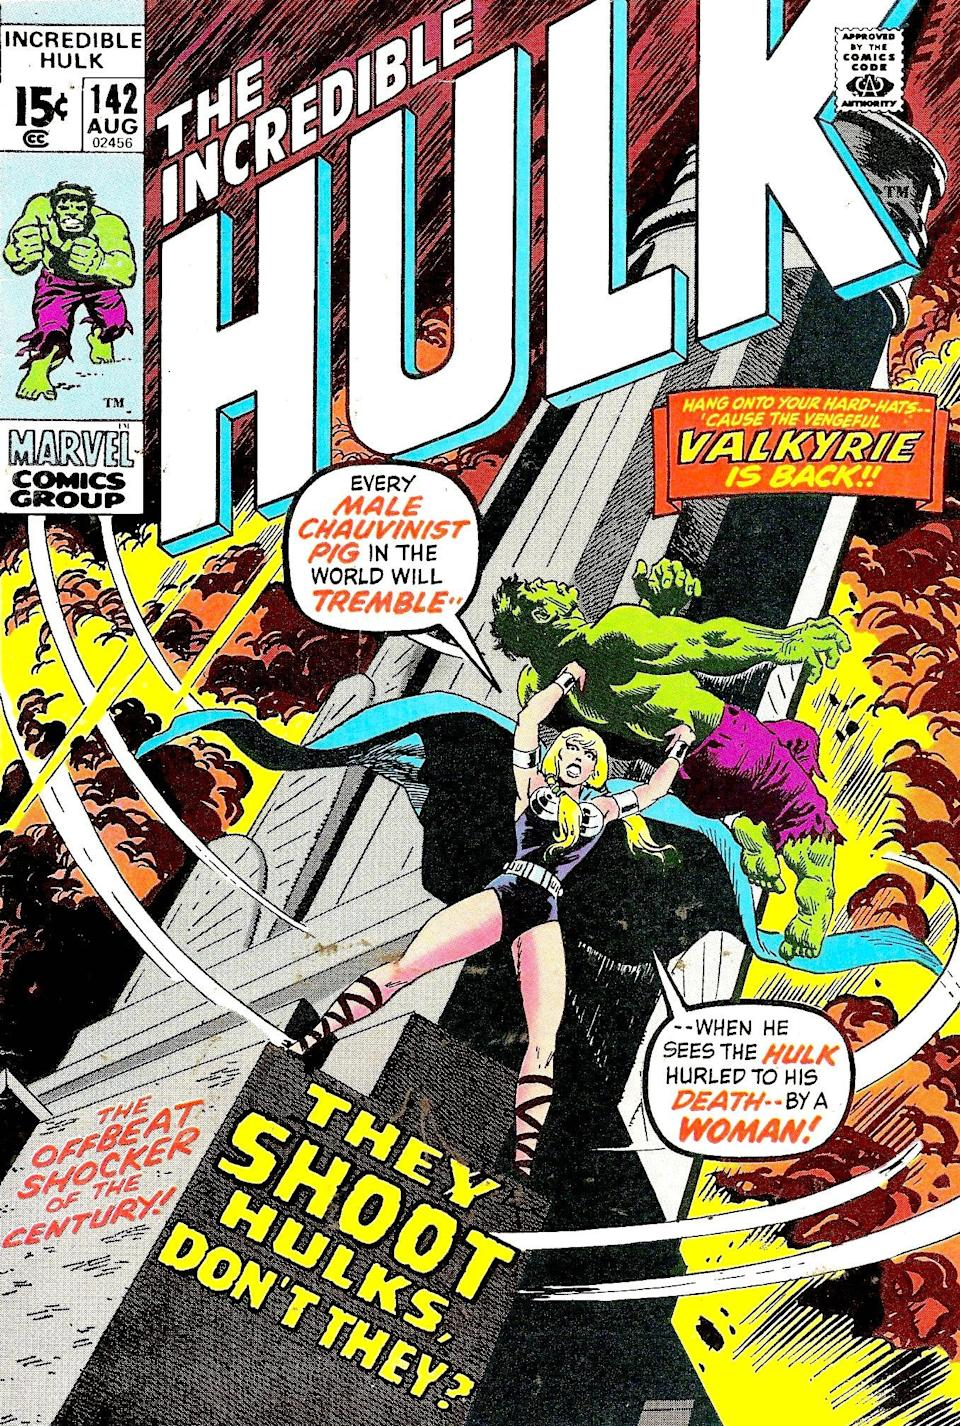 Valkyrie vs. Hulk on the cover of <i>The Incredible Hulk</i> 142. (Image: Marvel Comics)